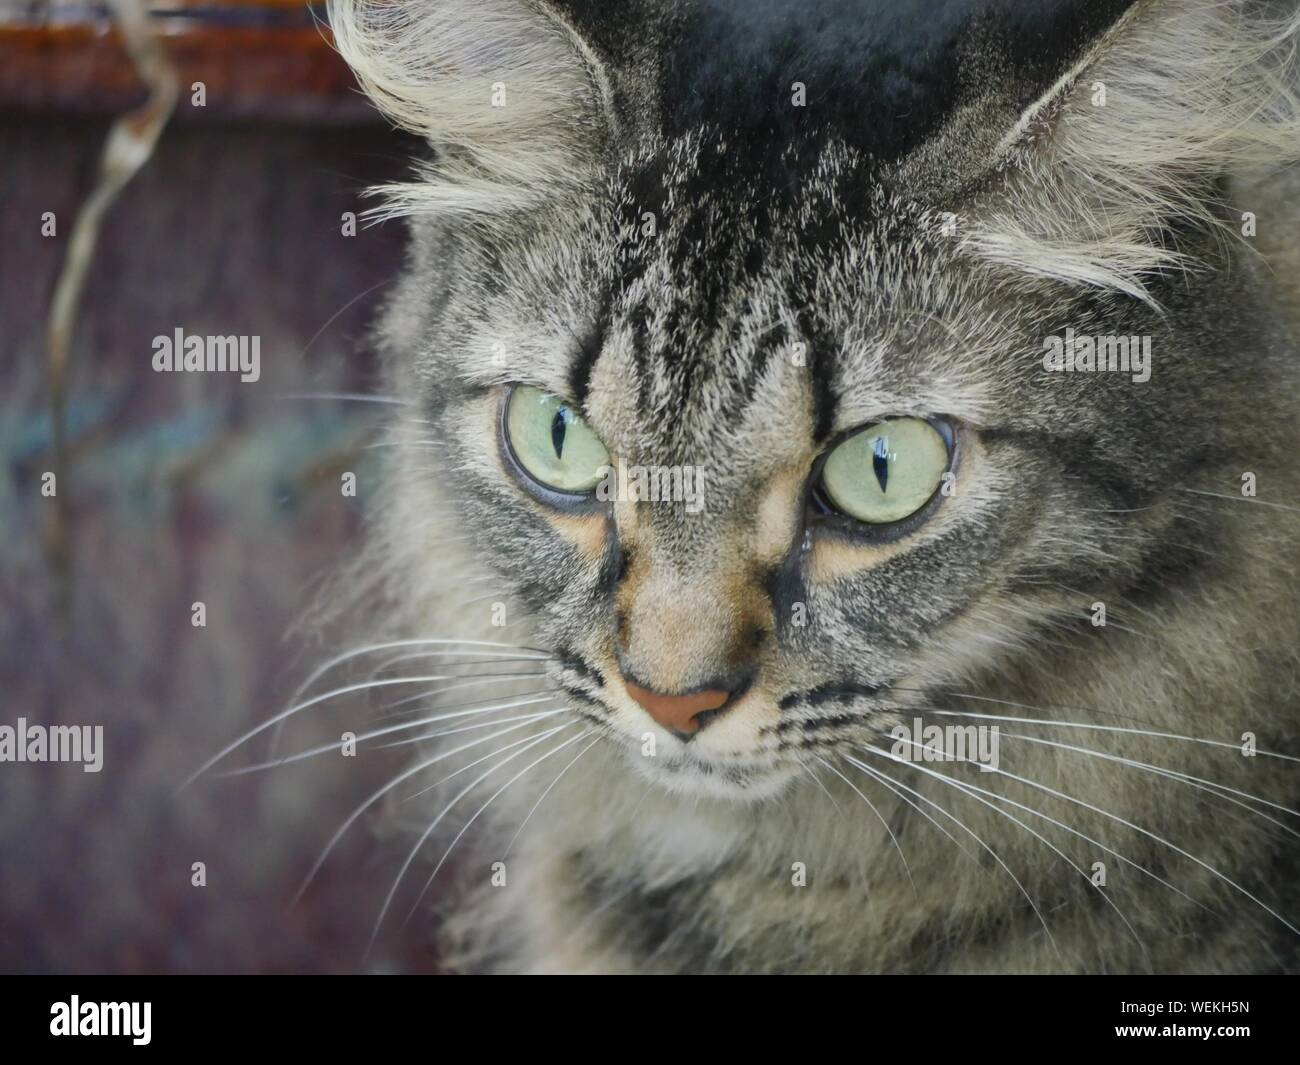 Close up of one of the pampered cats at the Hemingway house in Key West, Florida. Stock Photo